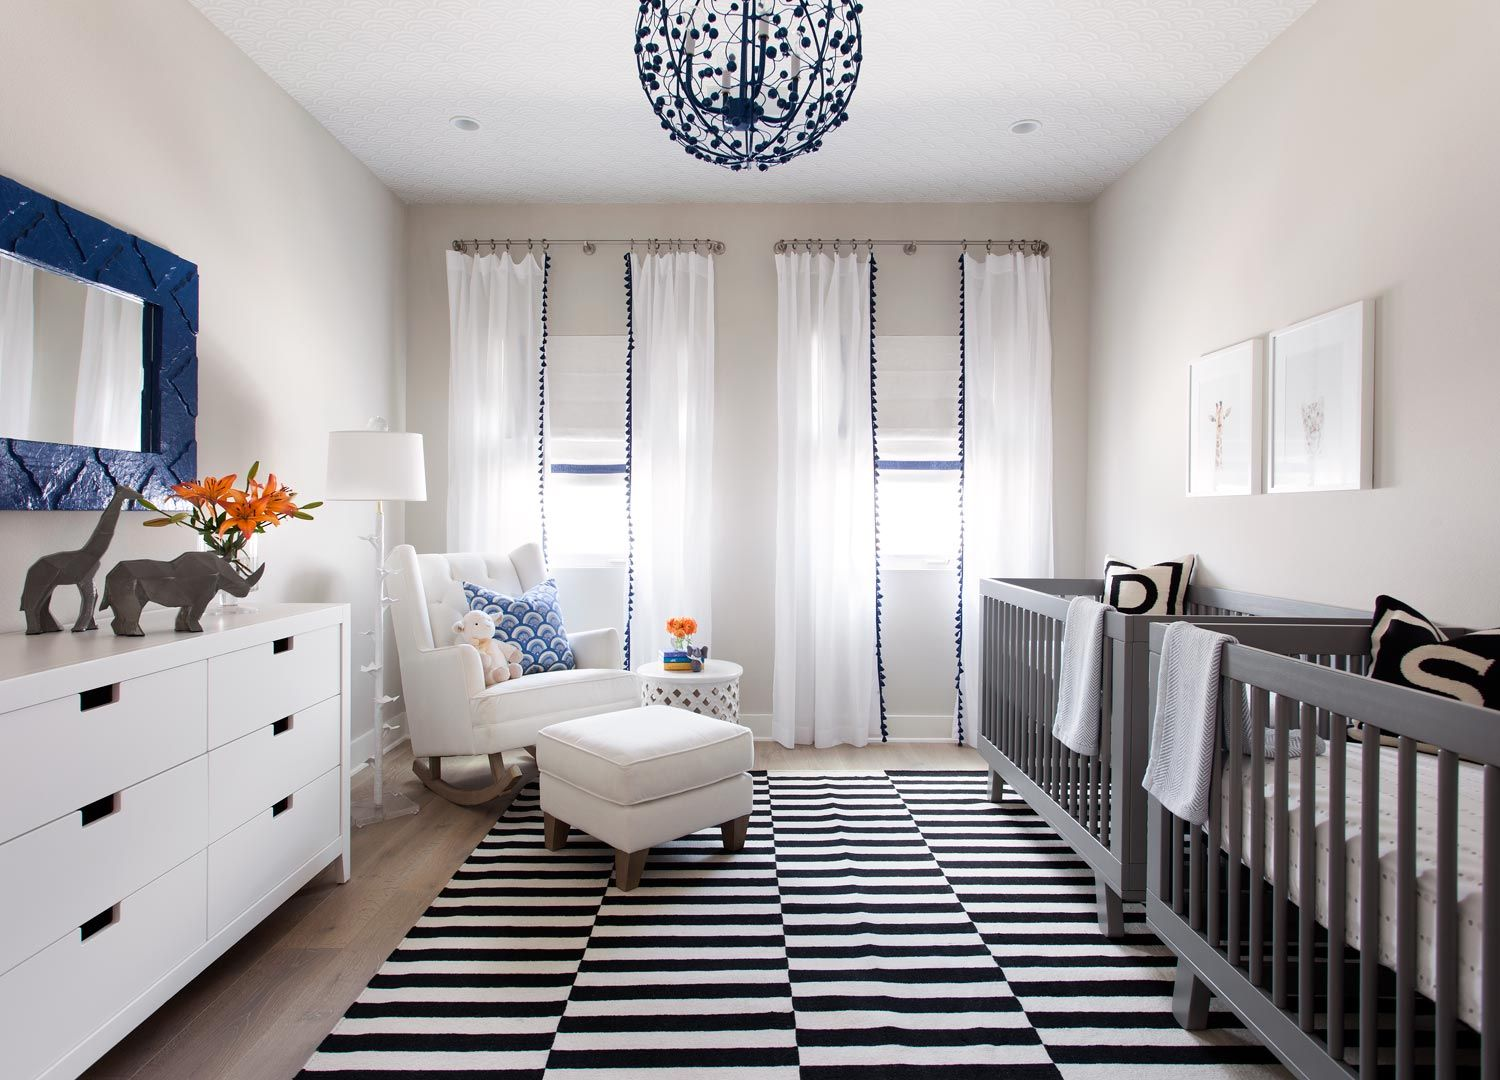 Best Black White Blue Baby Room With Animal Accent 400 x 300